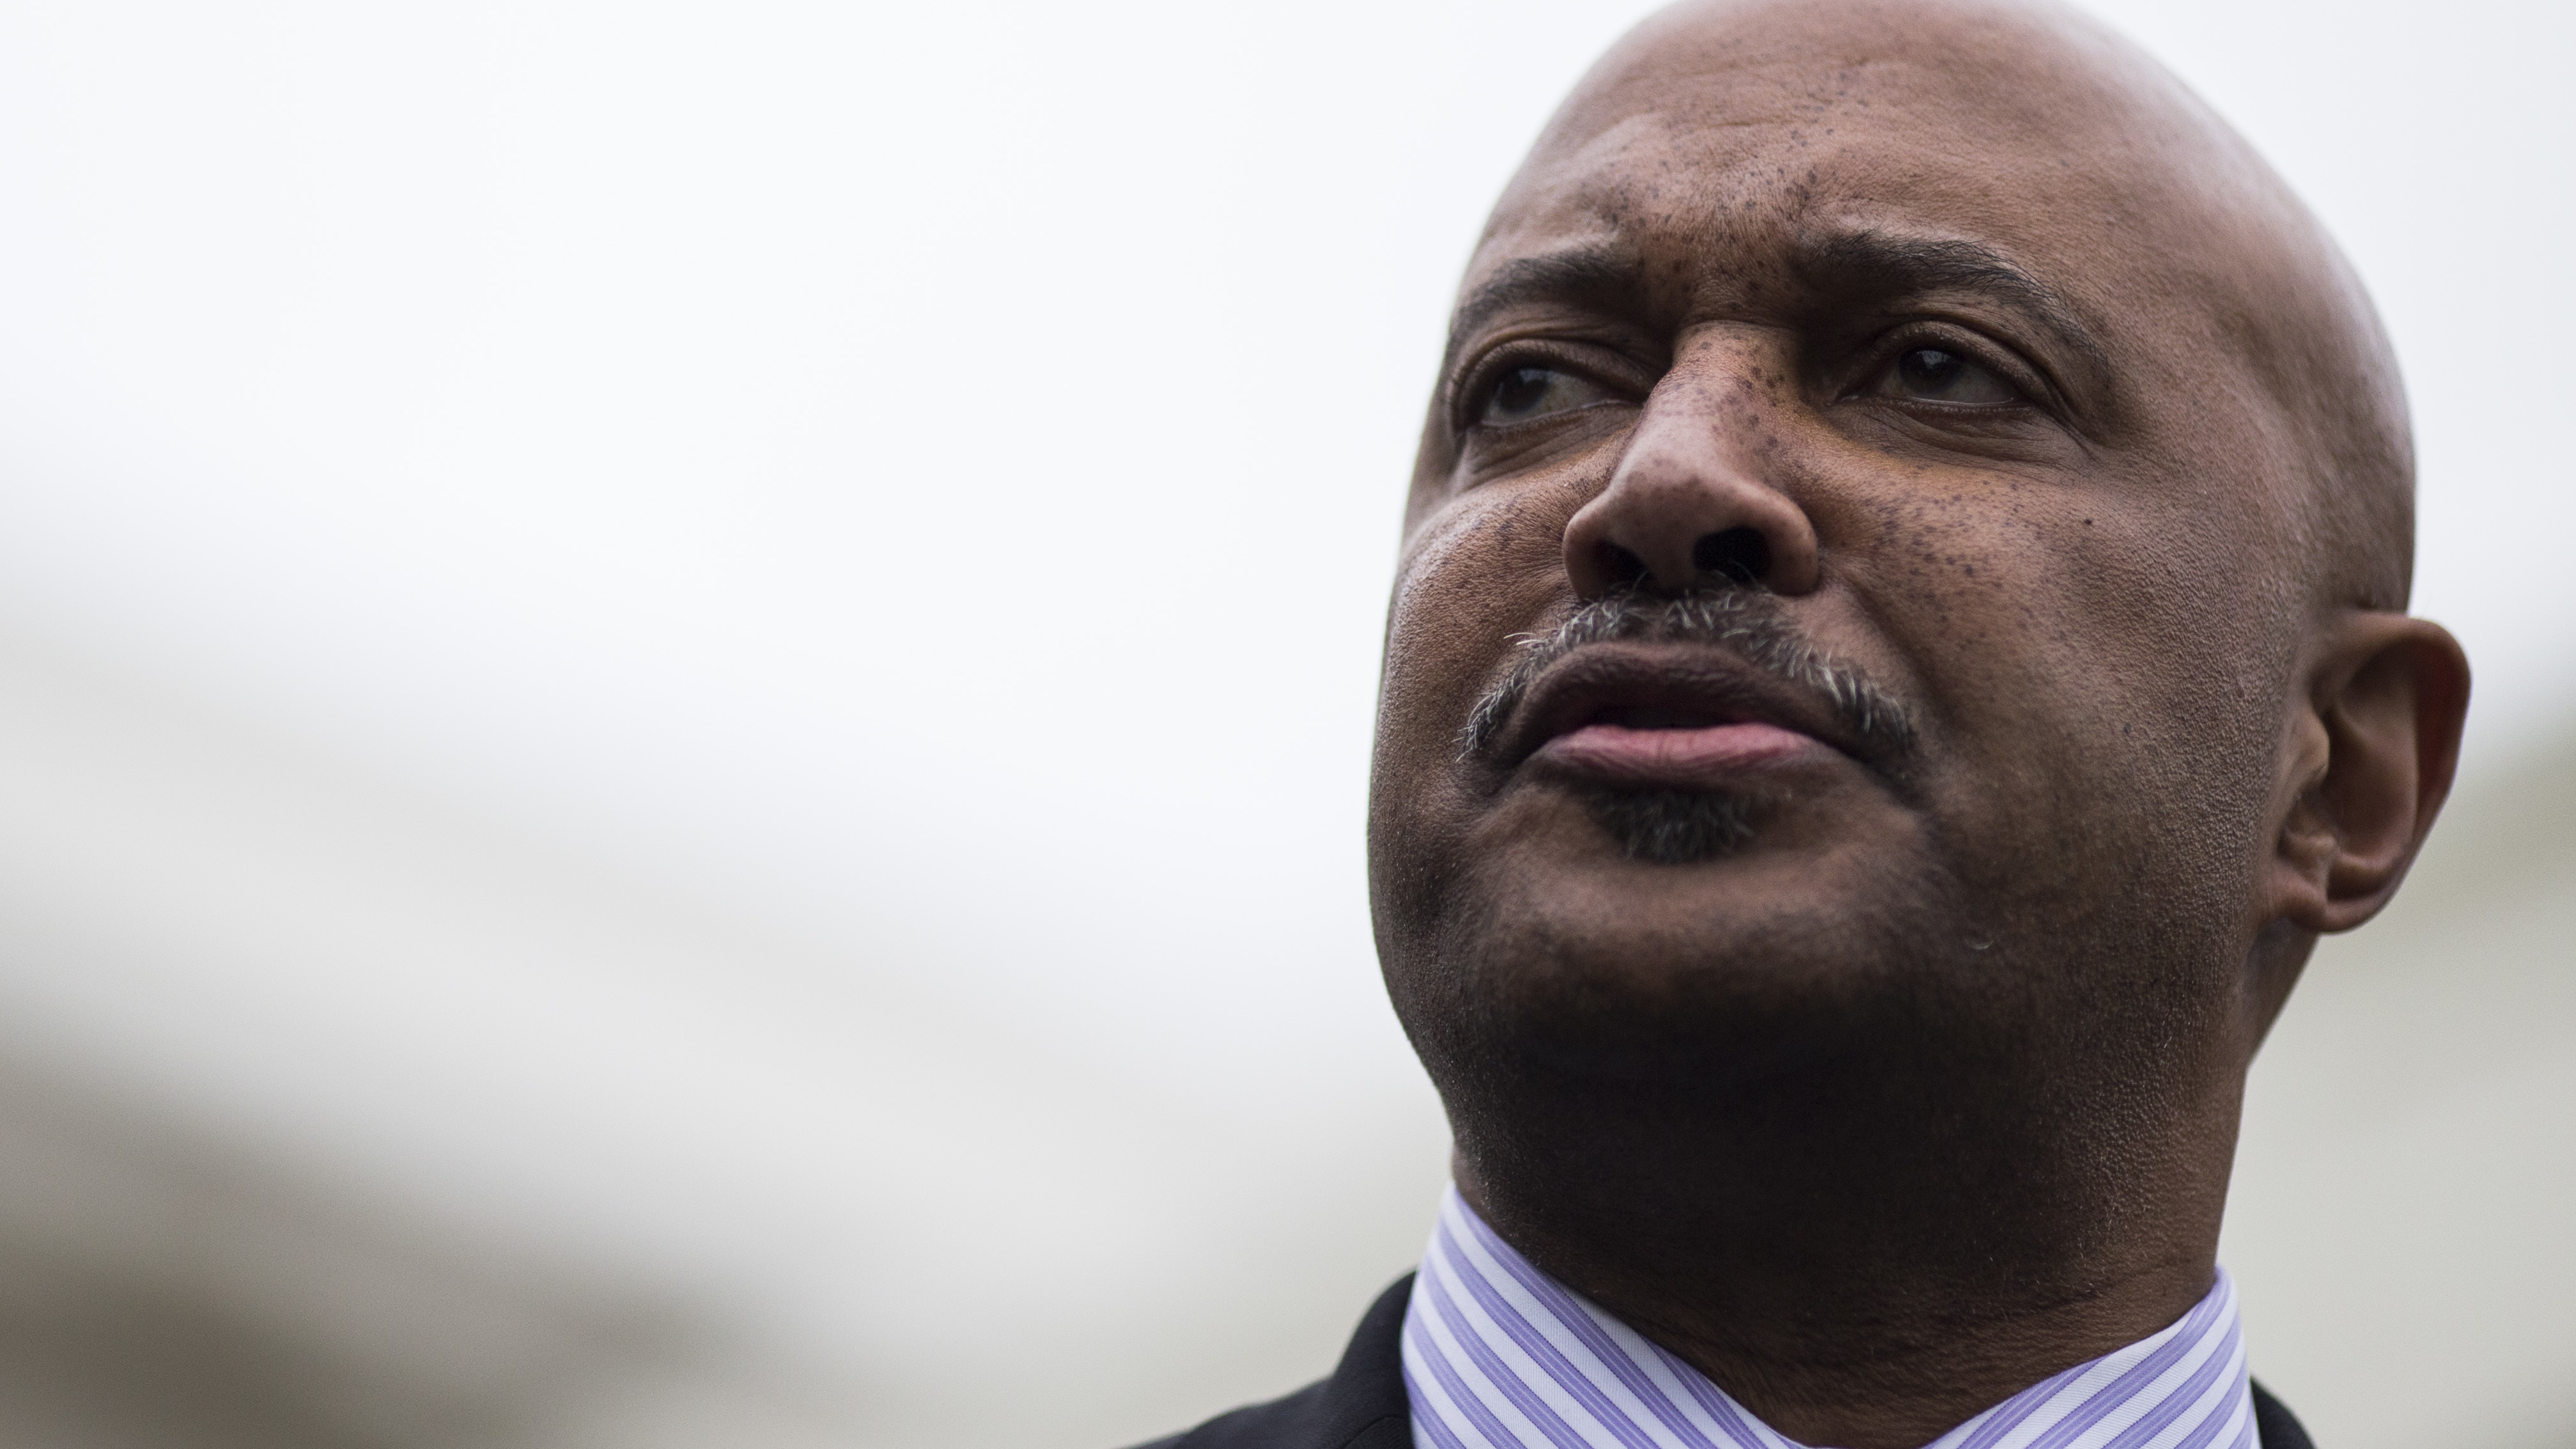 Indiana Attorney General Curtis Hill resigned after four women, including a state lawmaker, accused him of sexual harassment.